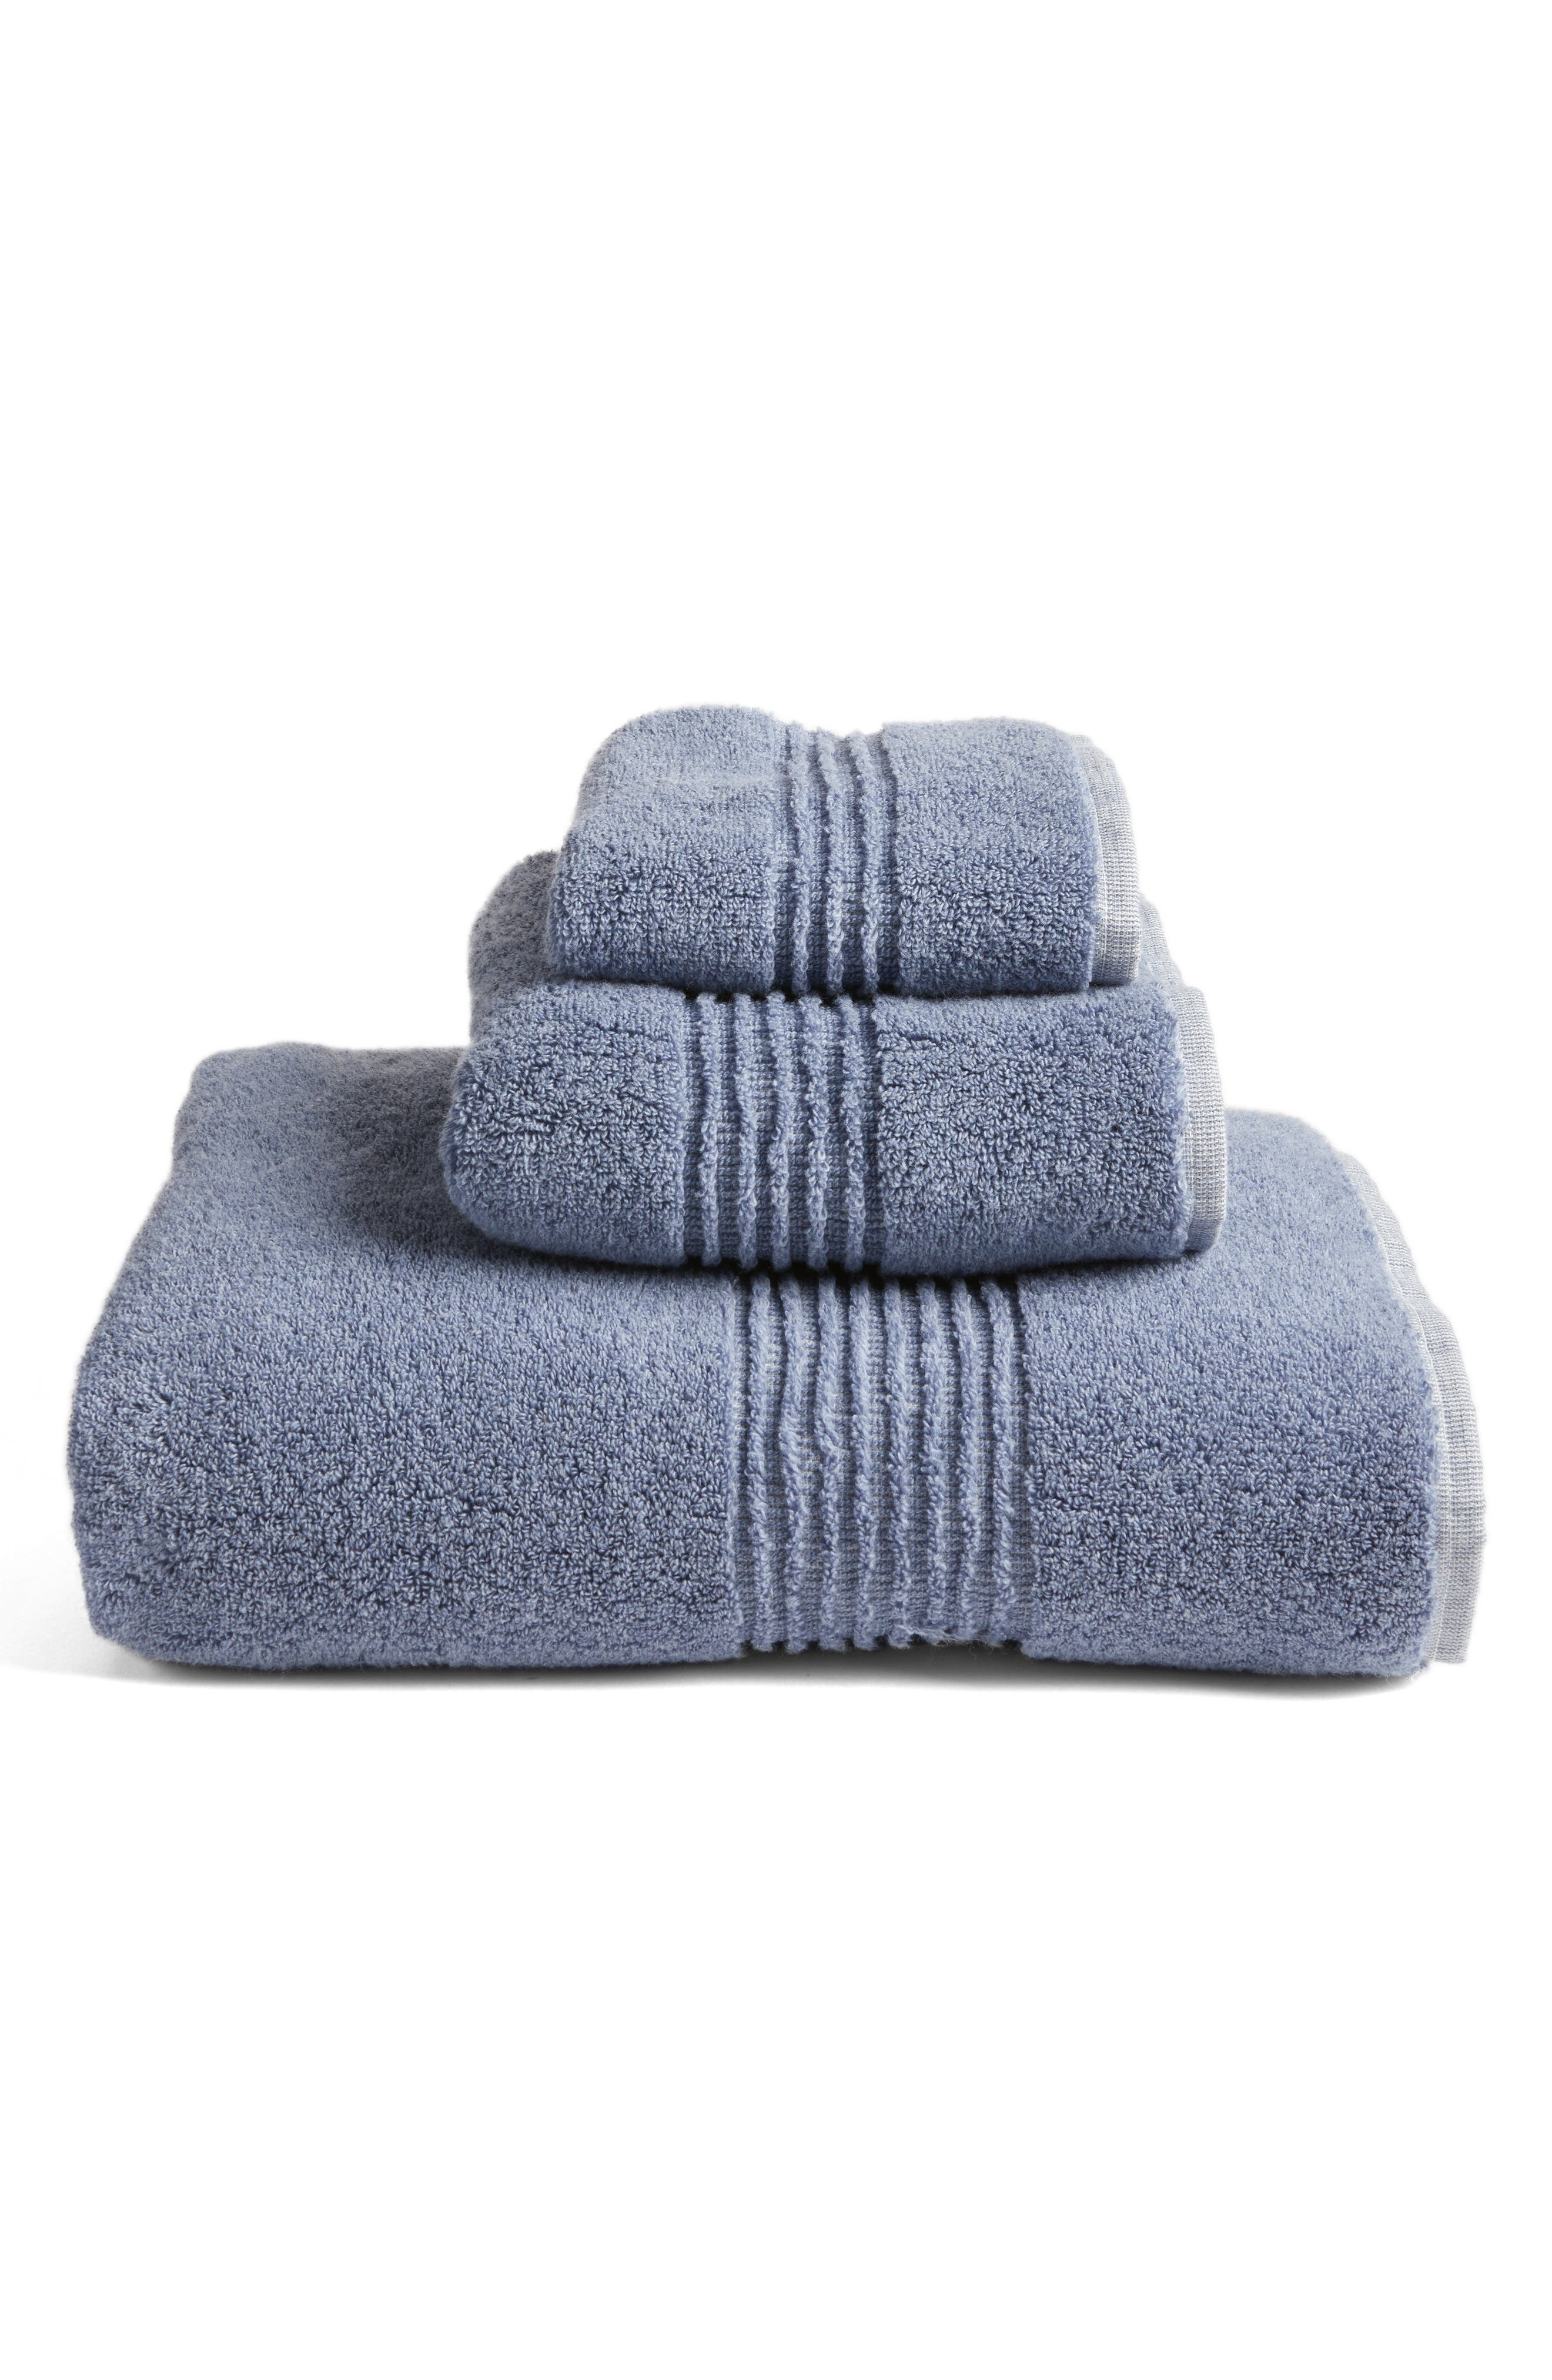 Alternate Image 3  - Nordstrom at Home Organic Hydrocotton Heathered Hand Towel (2 for $32)